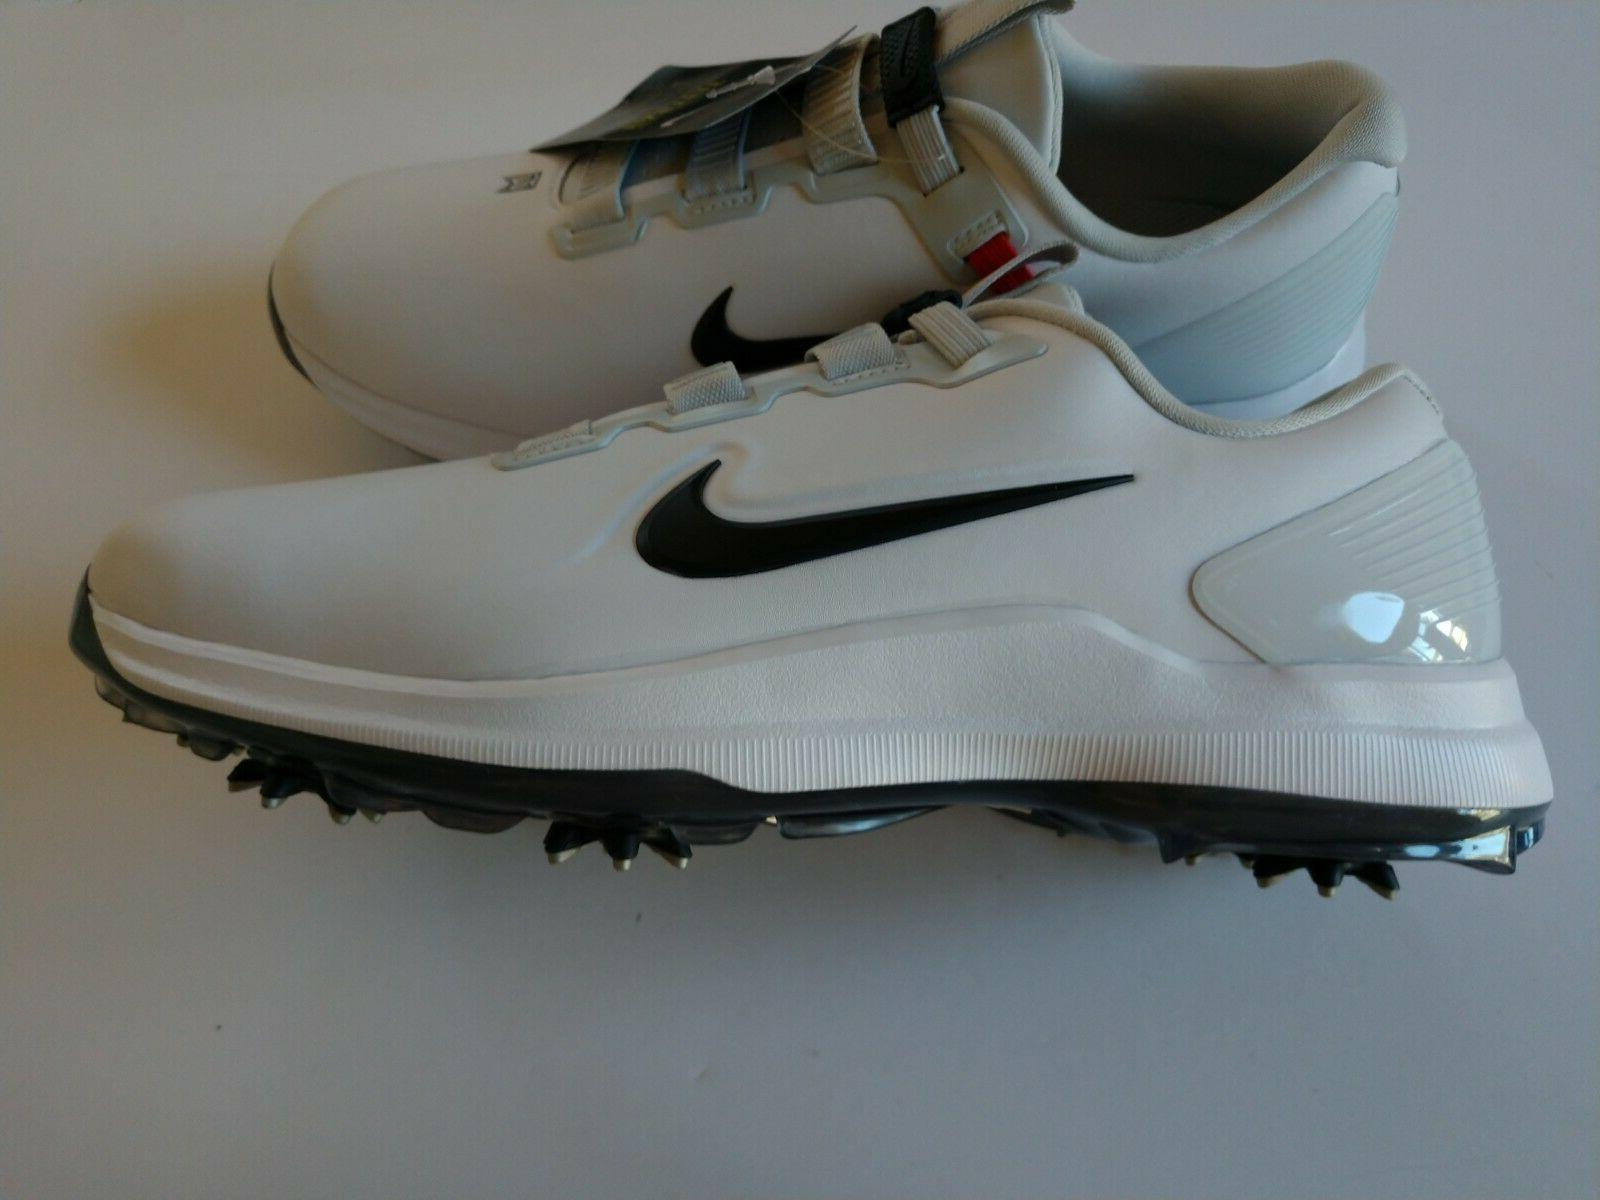 Nike Men's Woods TW71 Fastfit White Black sz